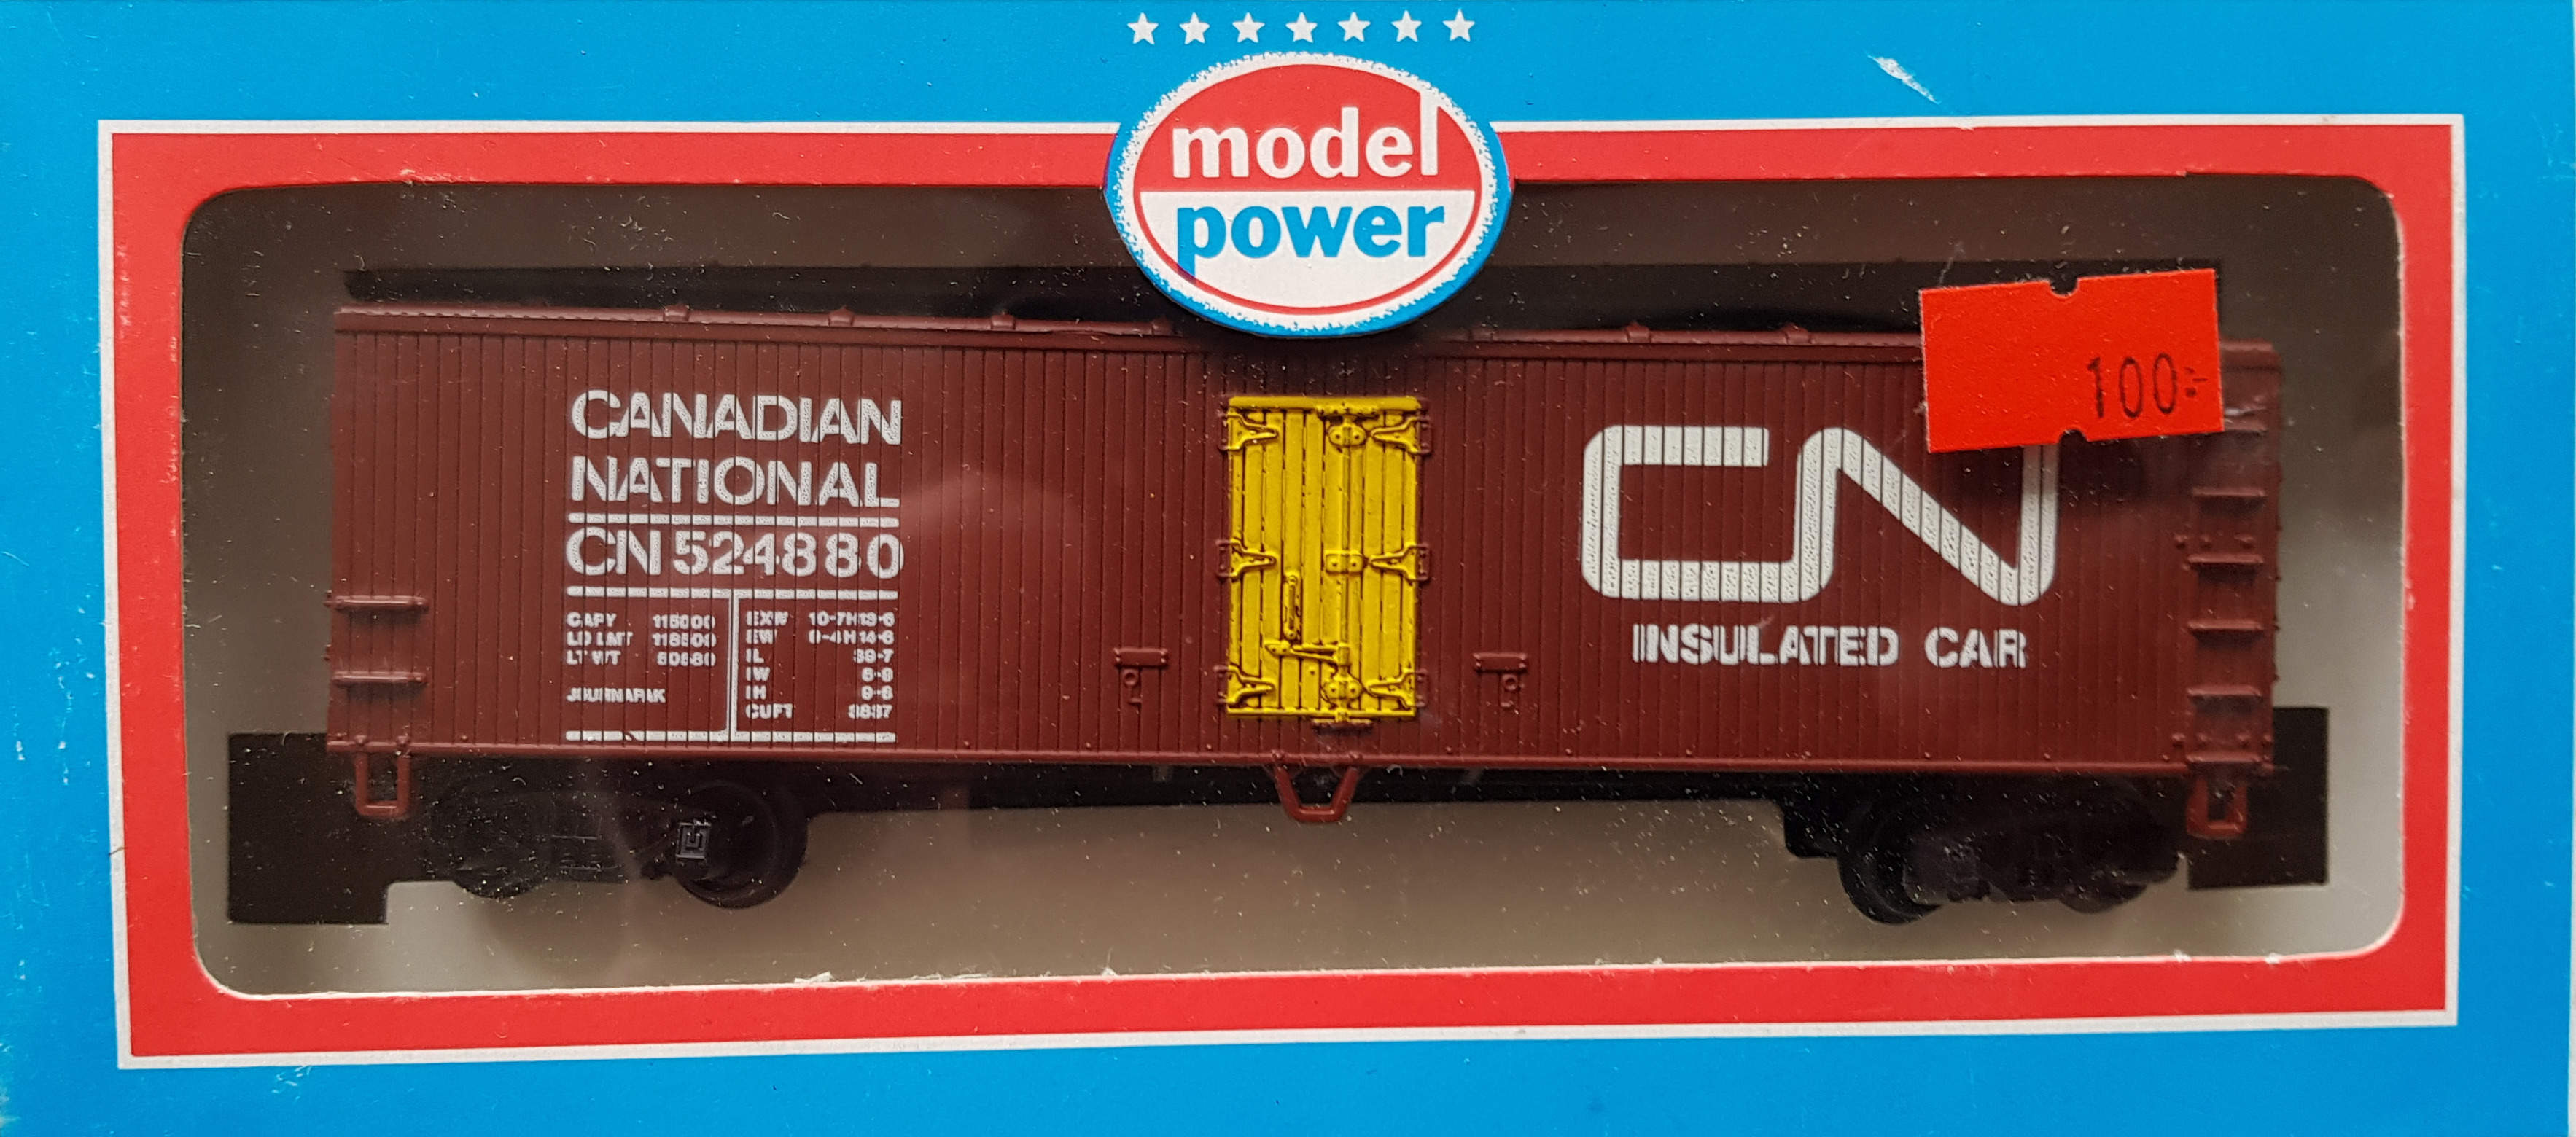 "Model Power Boxcar(godsvagn) ""Canadian National"", Kanadensisk, skala H0"